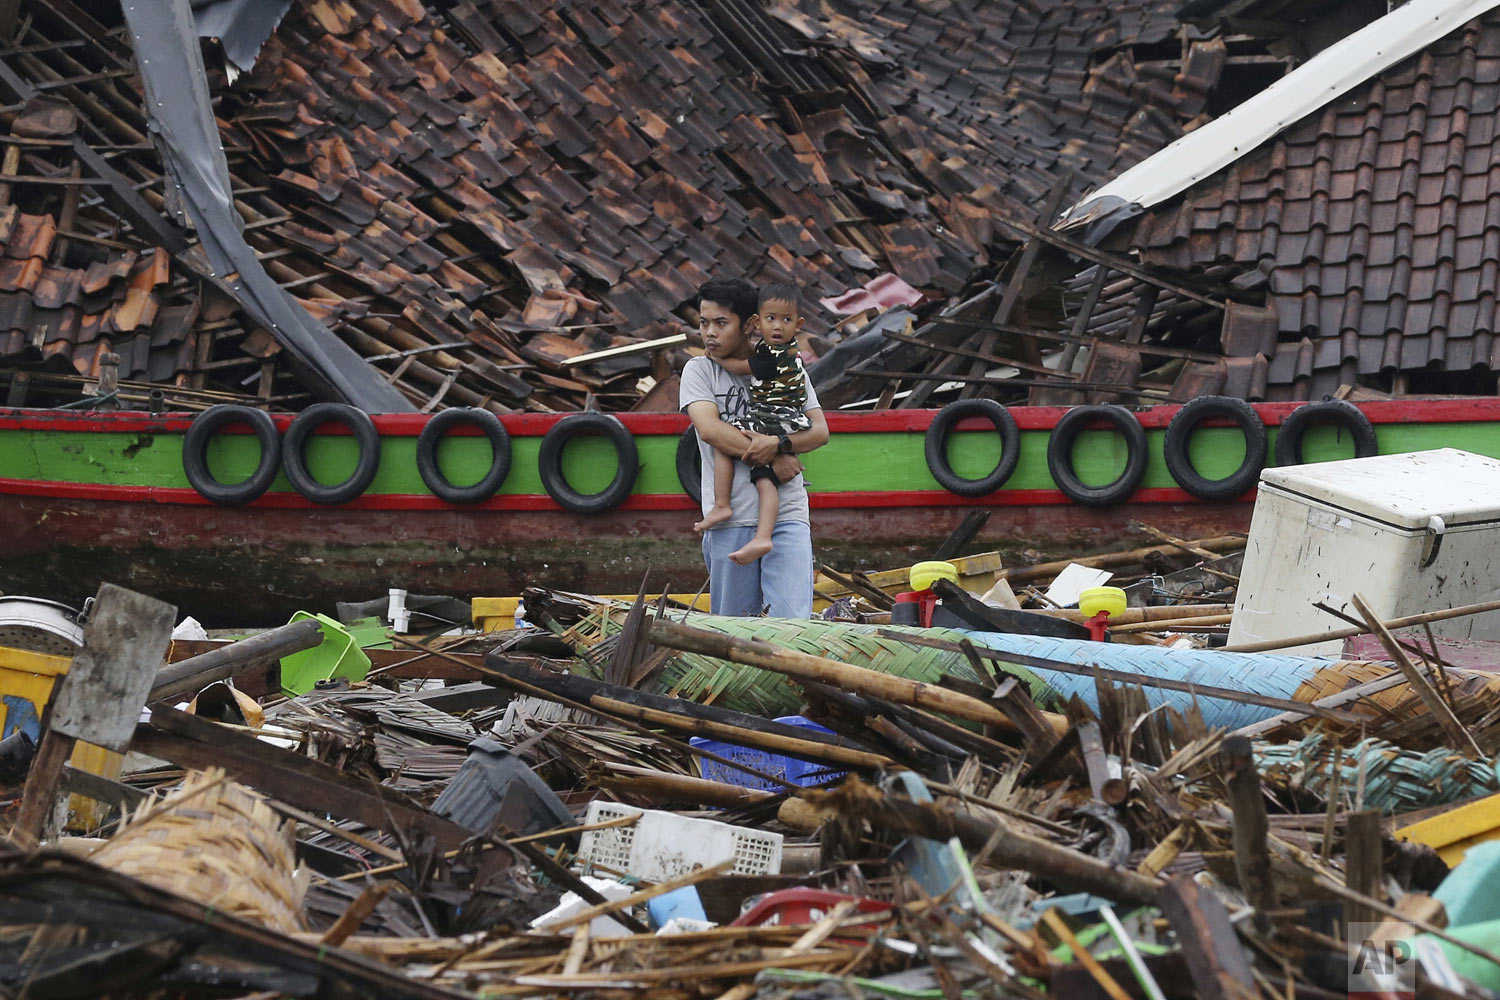 A man holds a child as he surveys the damage at a village struck by a tsunami in Sumur, Indonesia, Tuesday, Dec. 25, 2018. The waves struck without warning three days earlier. (AP Photo/Achmad Ibrahim)